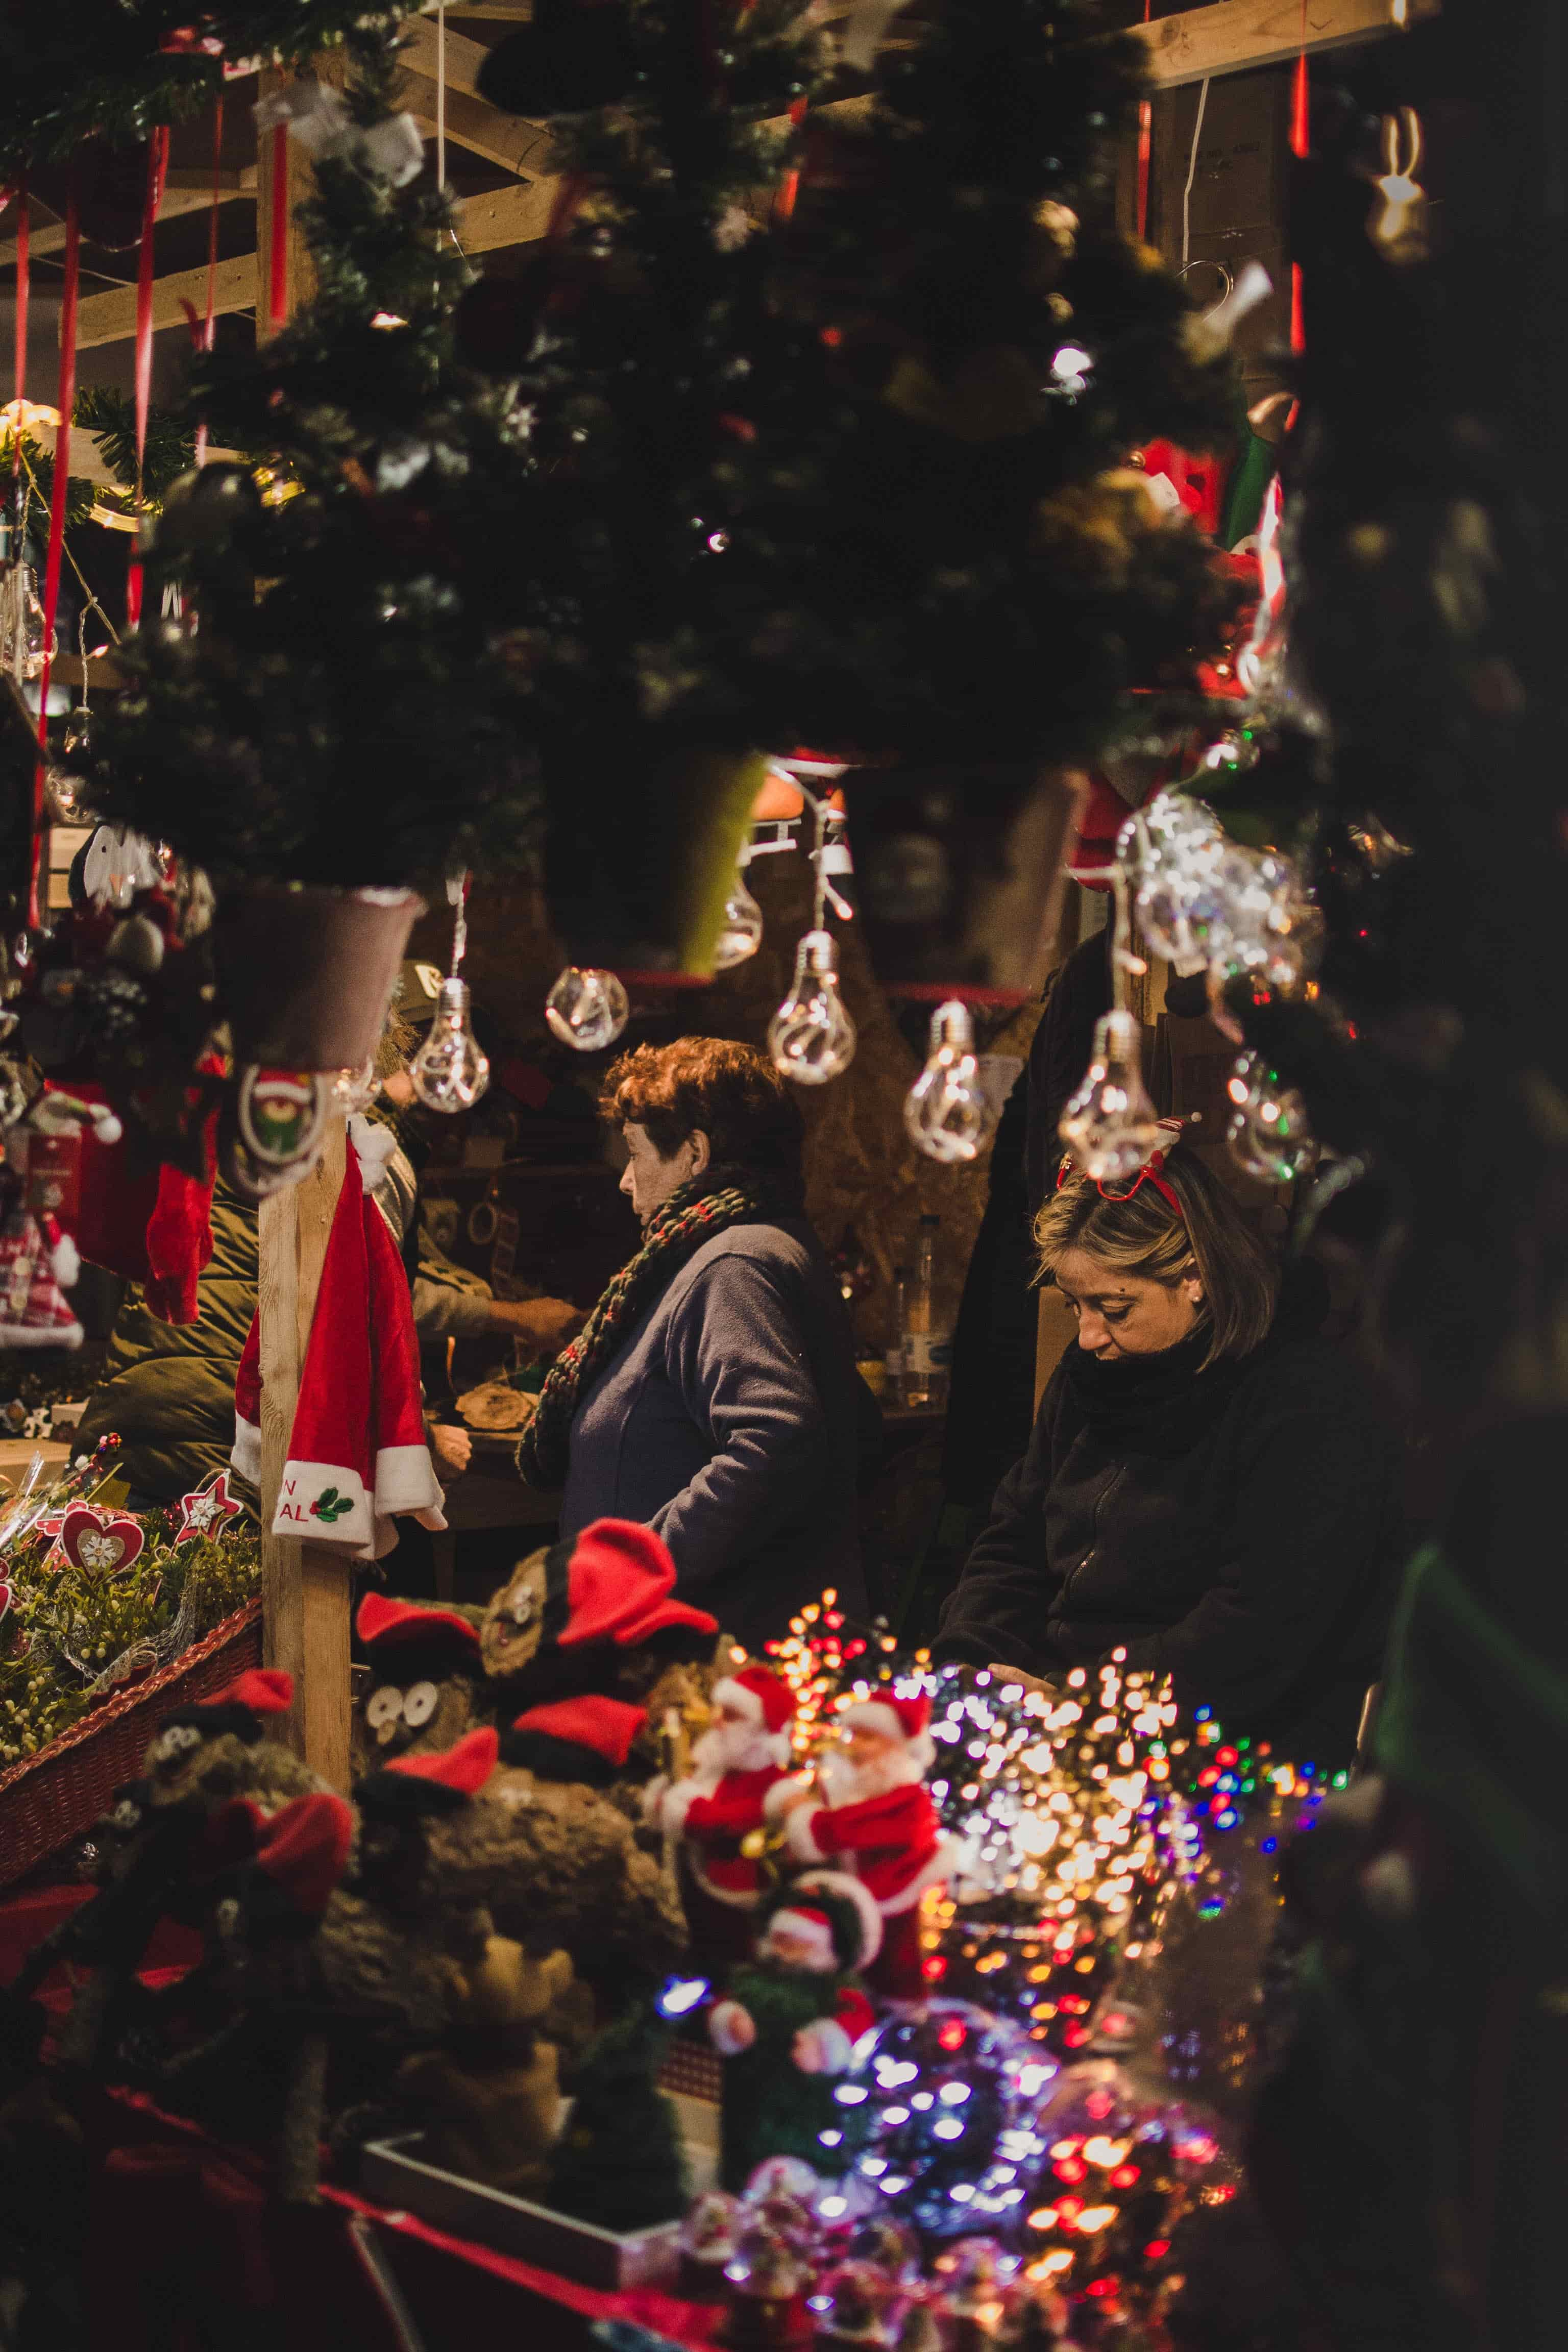 Venice in a festive mood: the Christmas markets